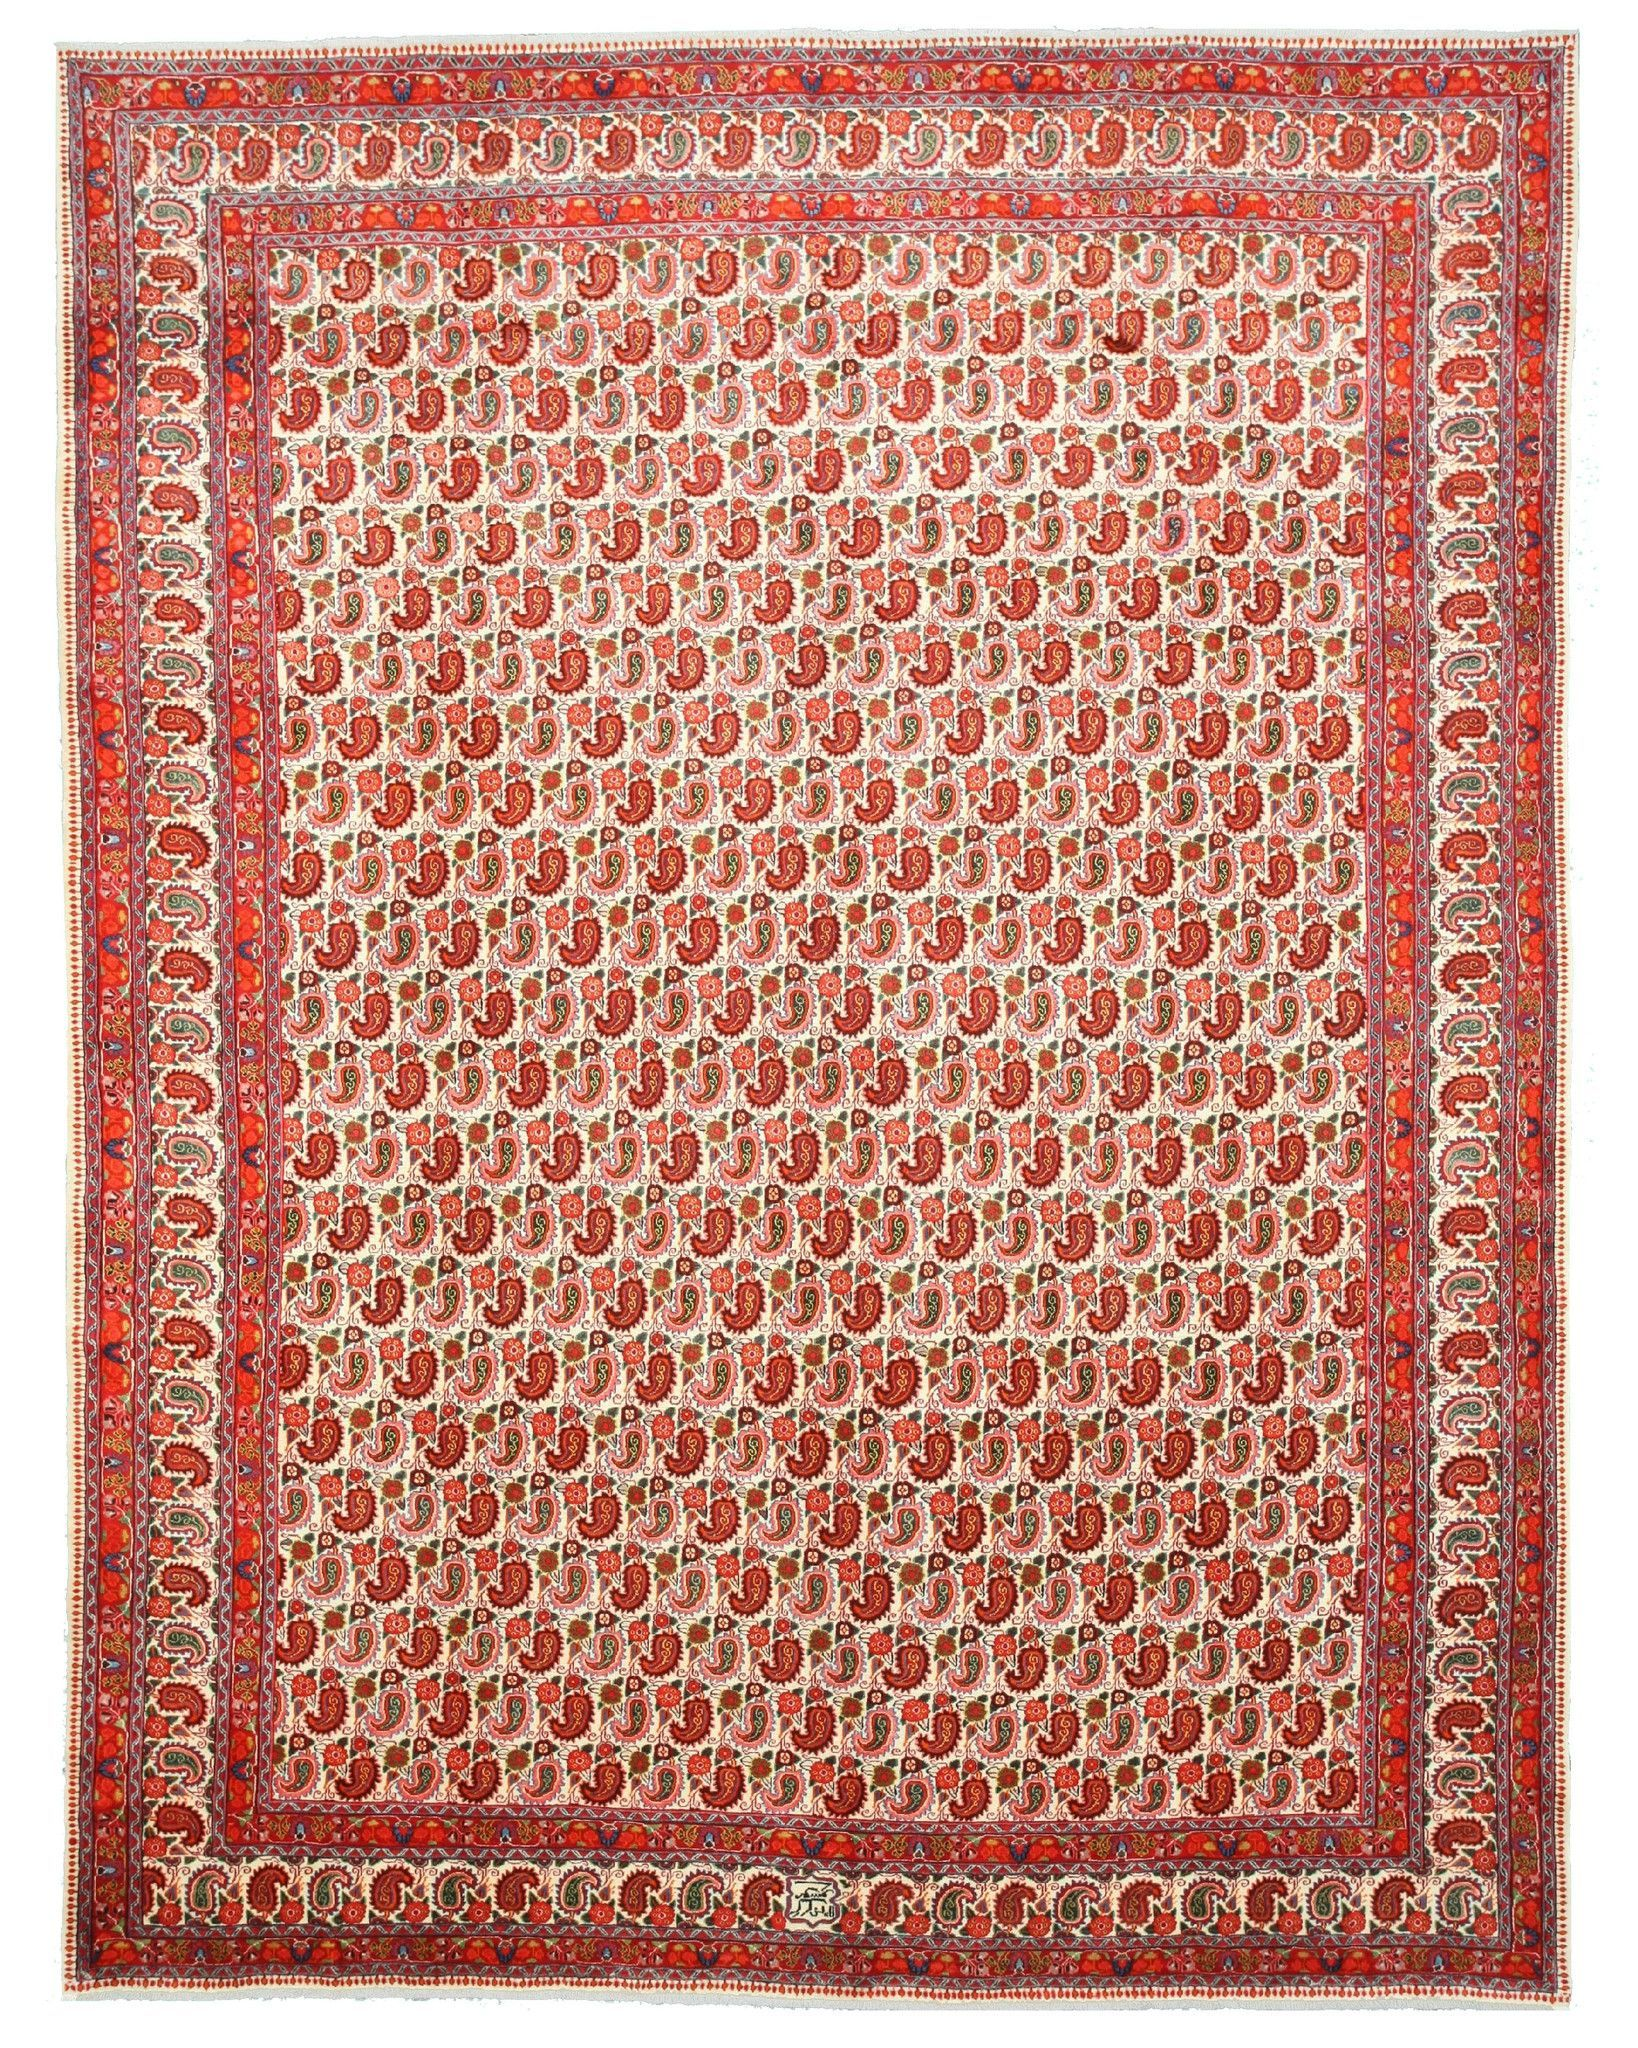 EORC X31103 Ivory Hand Knotted Wool Paisley Mood Rug (10'8 x 13'10)